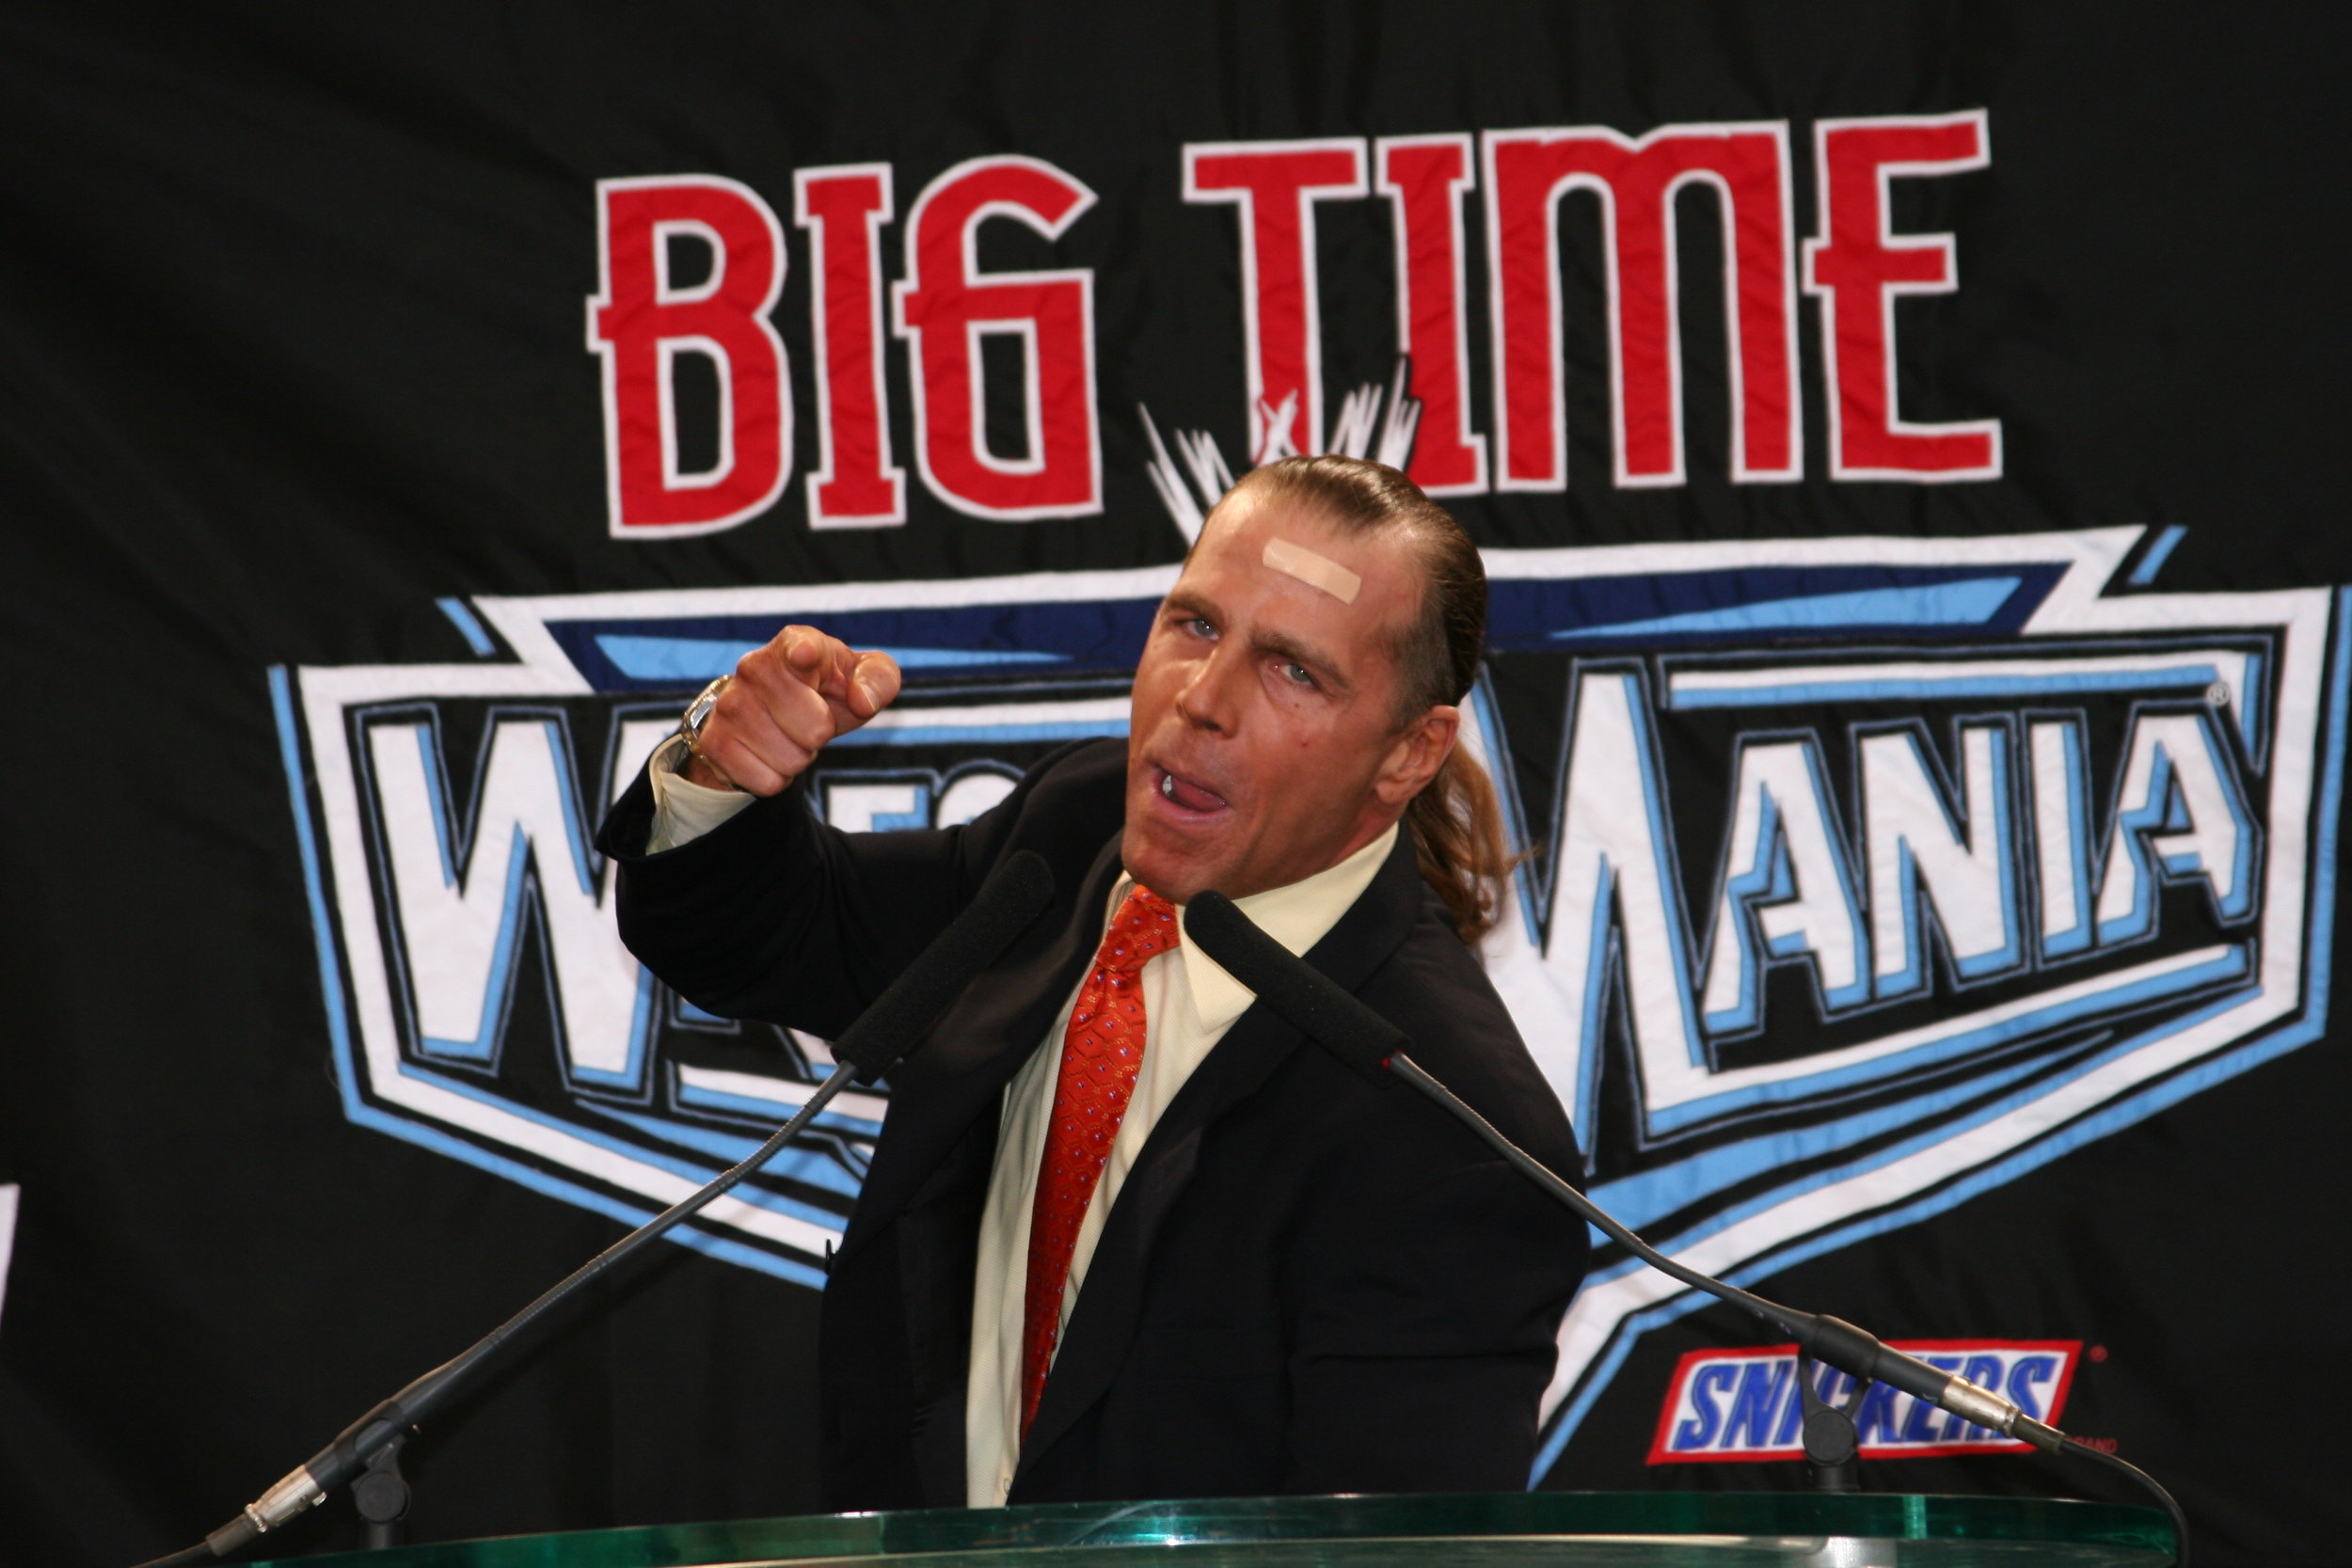 WWE Hall of Famer Shawn Michaels speaks during the WrestleMania 22 press conference at the Chicago Theatre in March 2006. Michaels will be in the corner of Triple H at this weekend's WWE Super Show-Down in Melbourne, Australia.  (Photo by Mike Pankow)